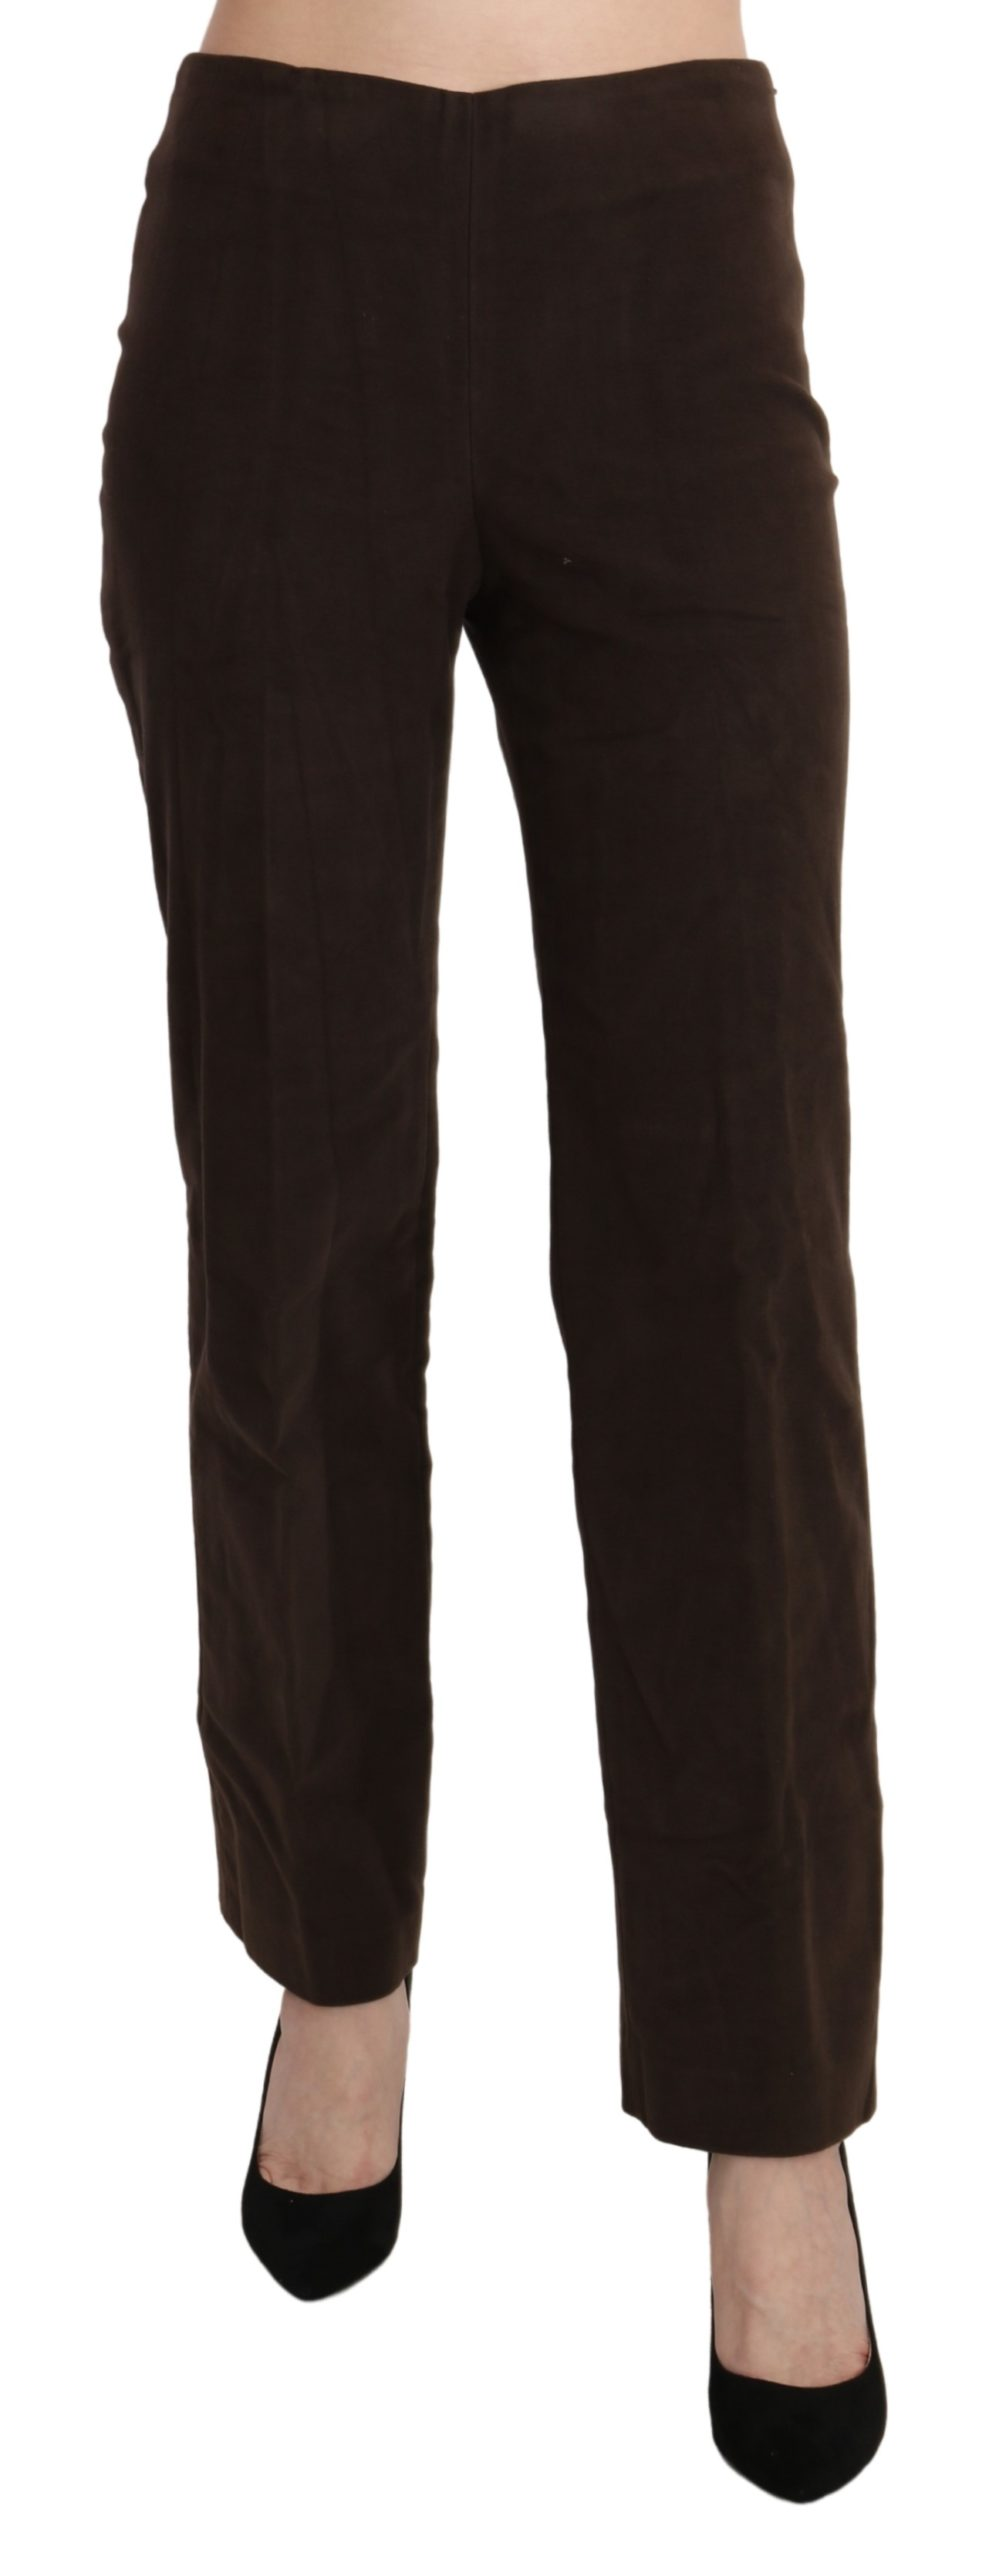 BENCIVENGA Women's Suede High Waist Straight Trousers Brown PAN71374-42 - IT42|M